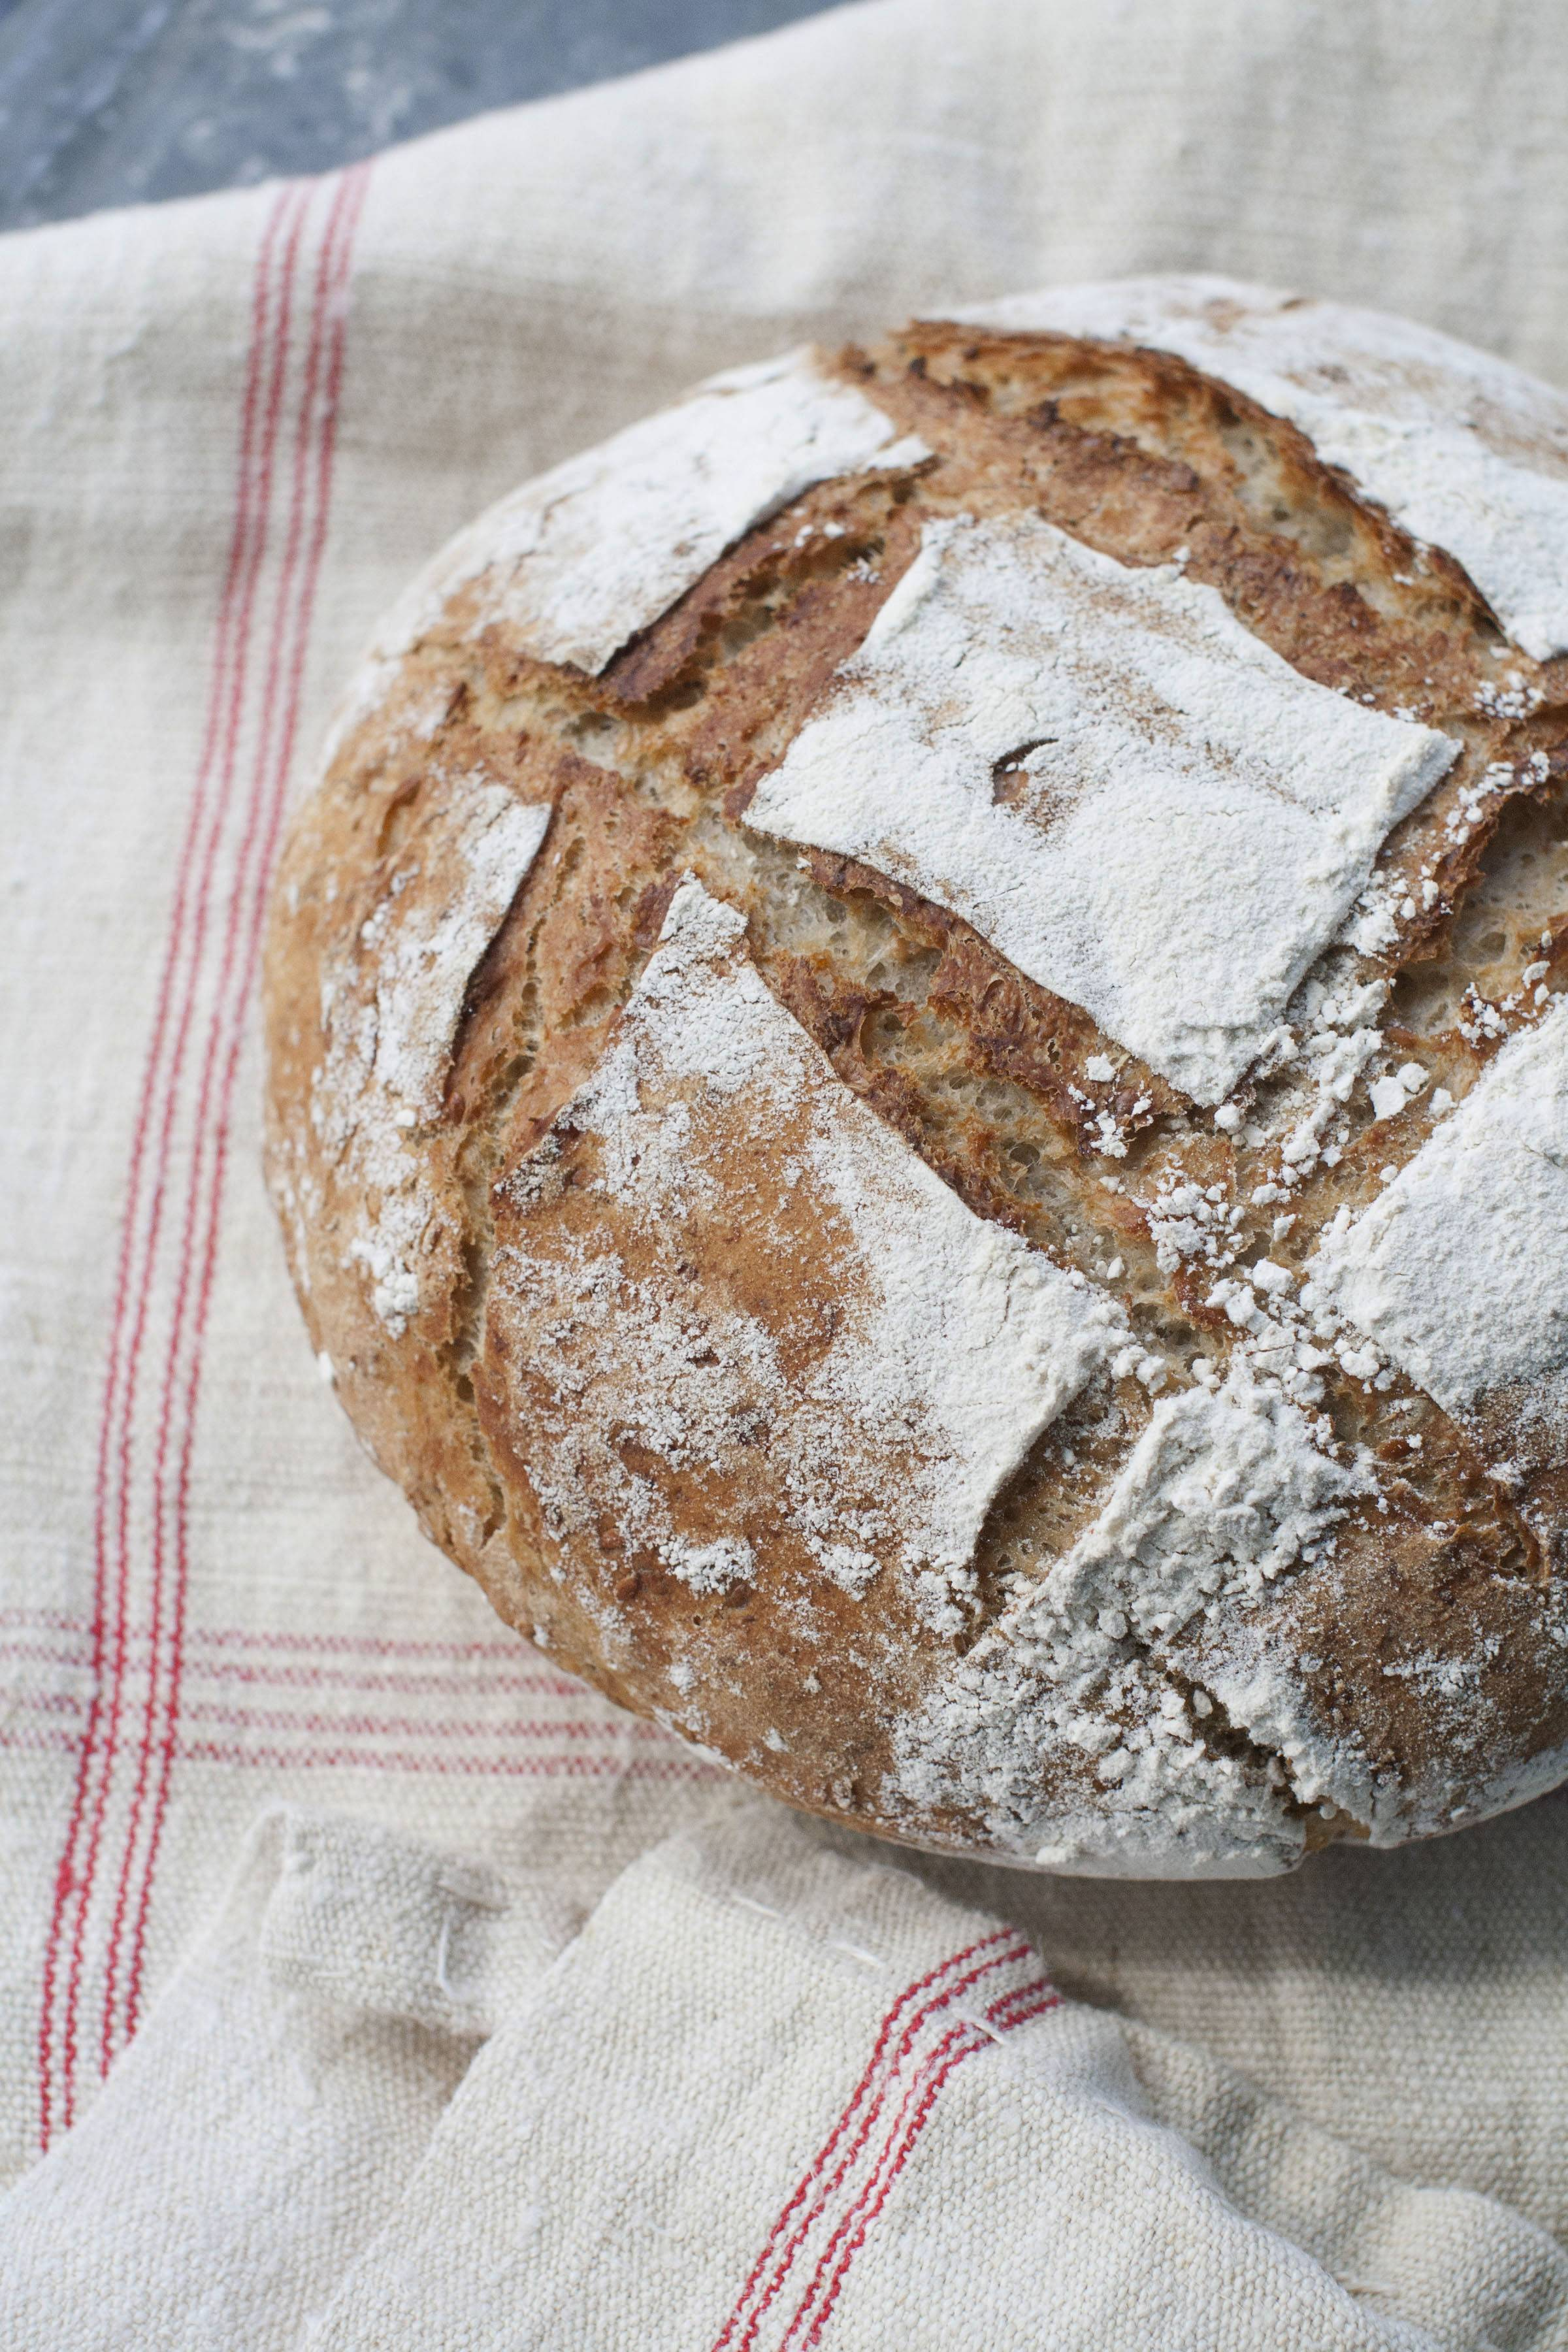 Artisanal quality bread is possible at home with a double Dutch oven.